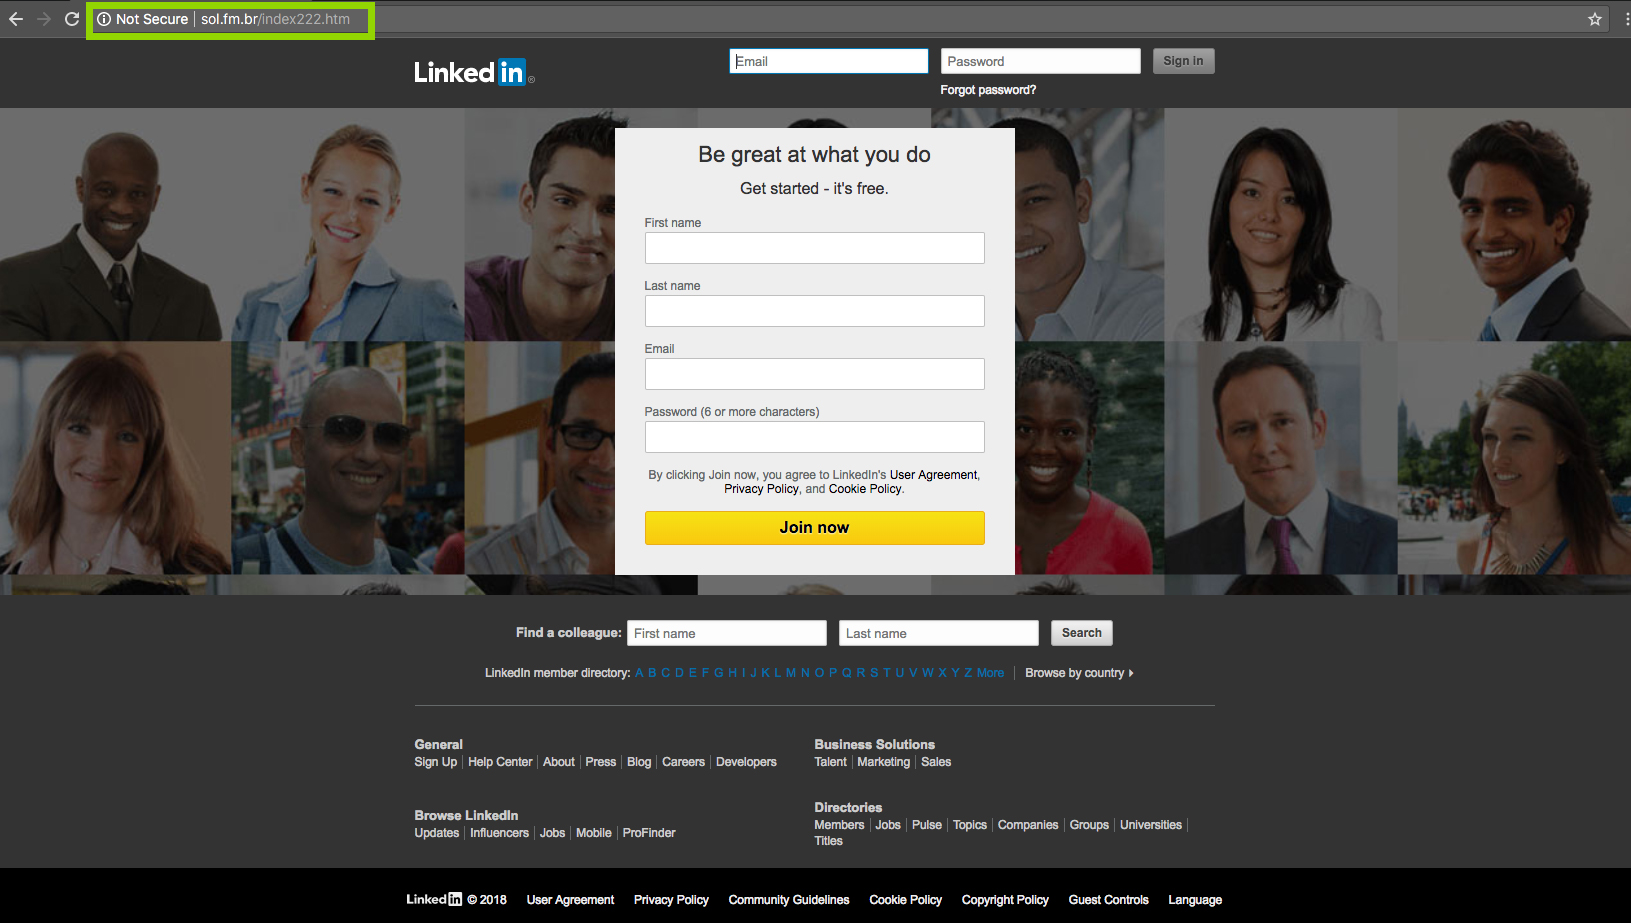 An example LinkedIn phishing site